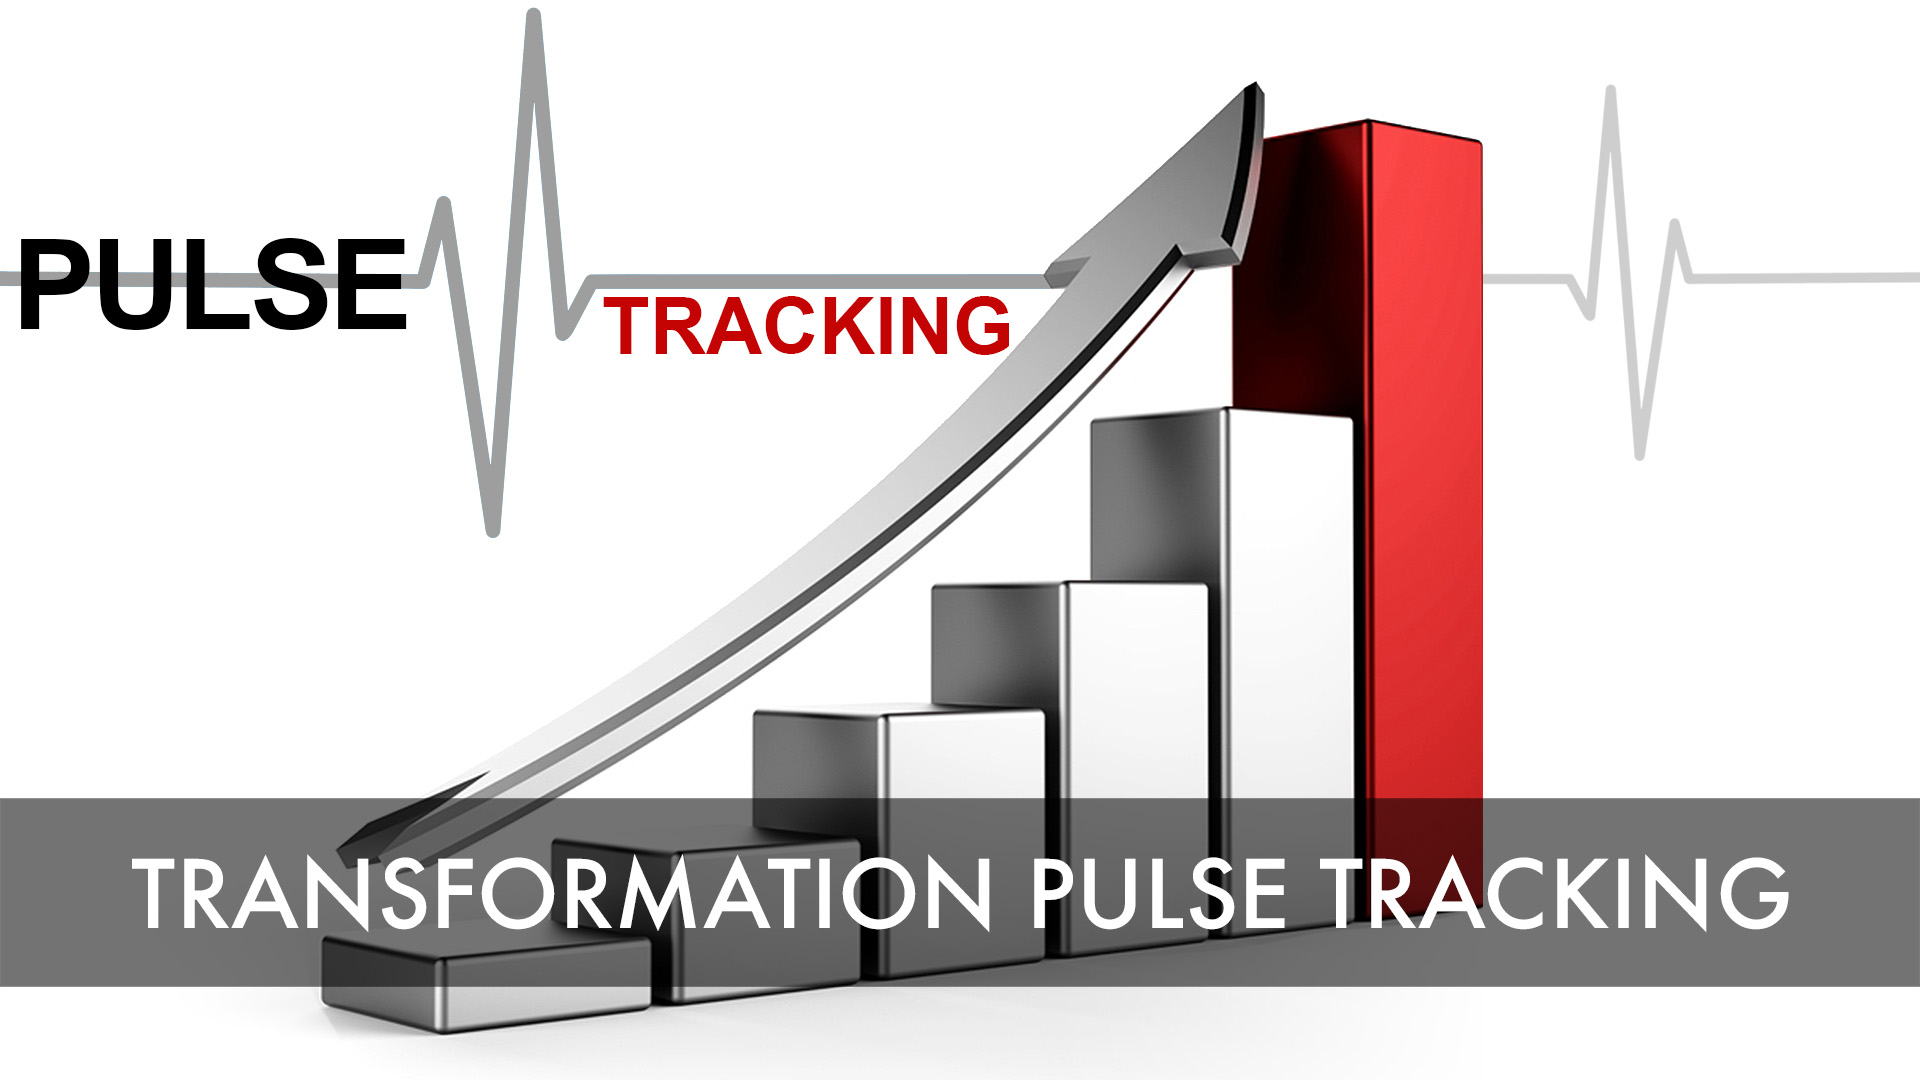 Transformation Pulse Tracking Thumbnail.jpg